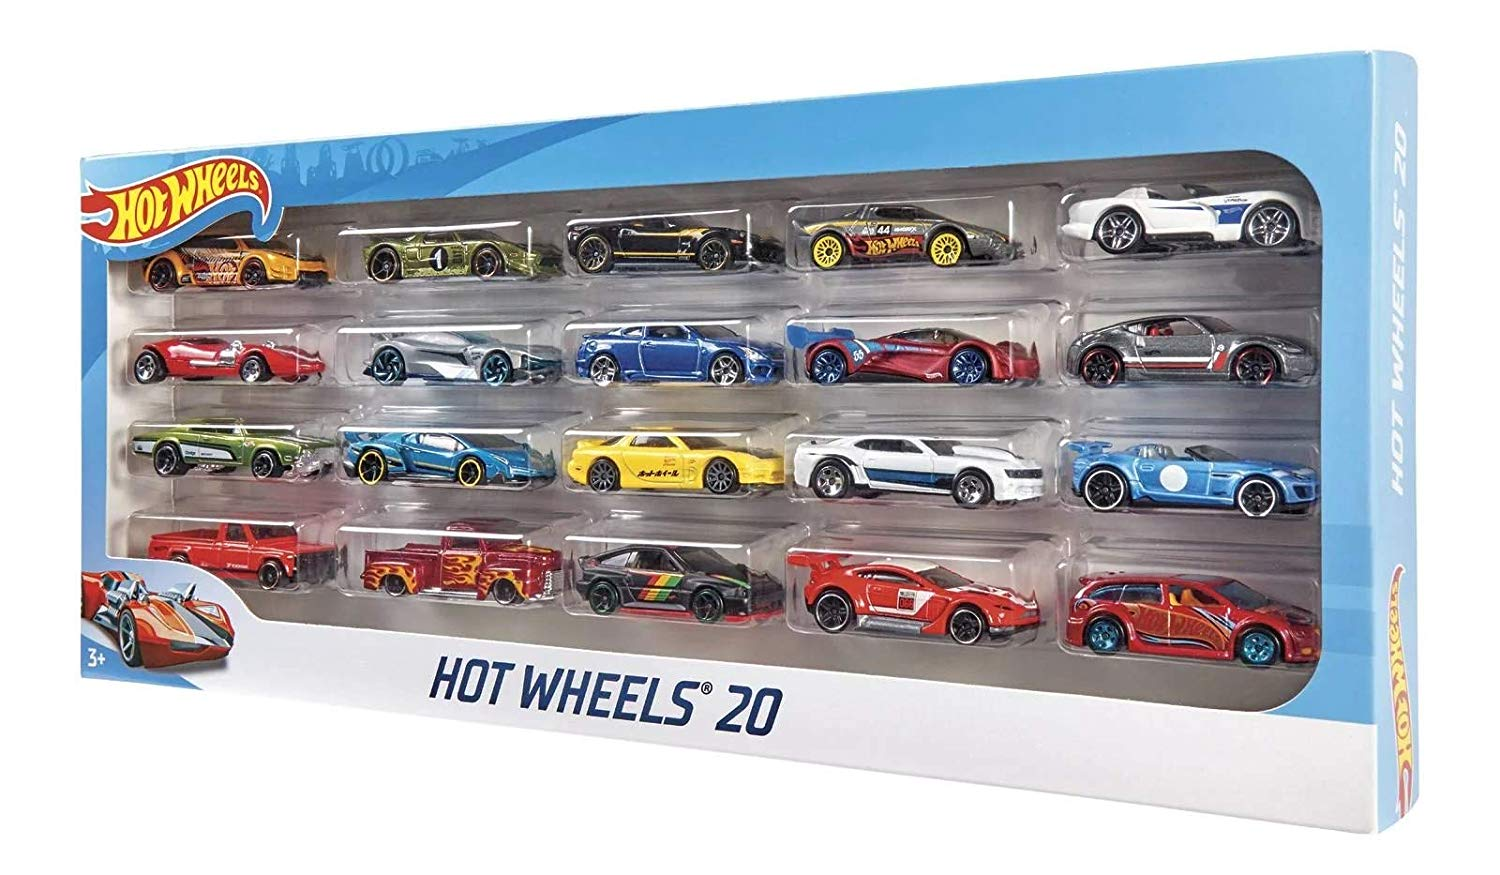 Carrinho Hot Wheels (Set com 20 Carros Sortidos) - Hot Wheels